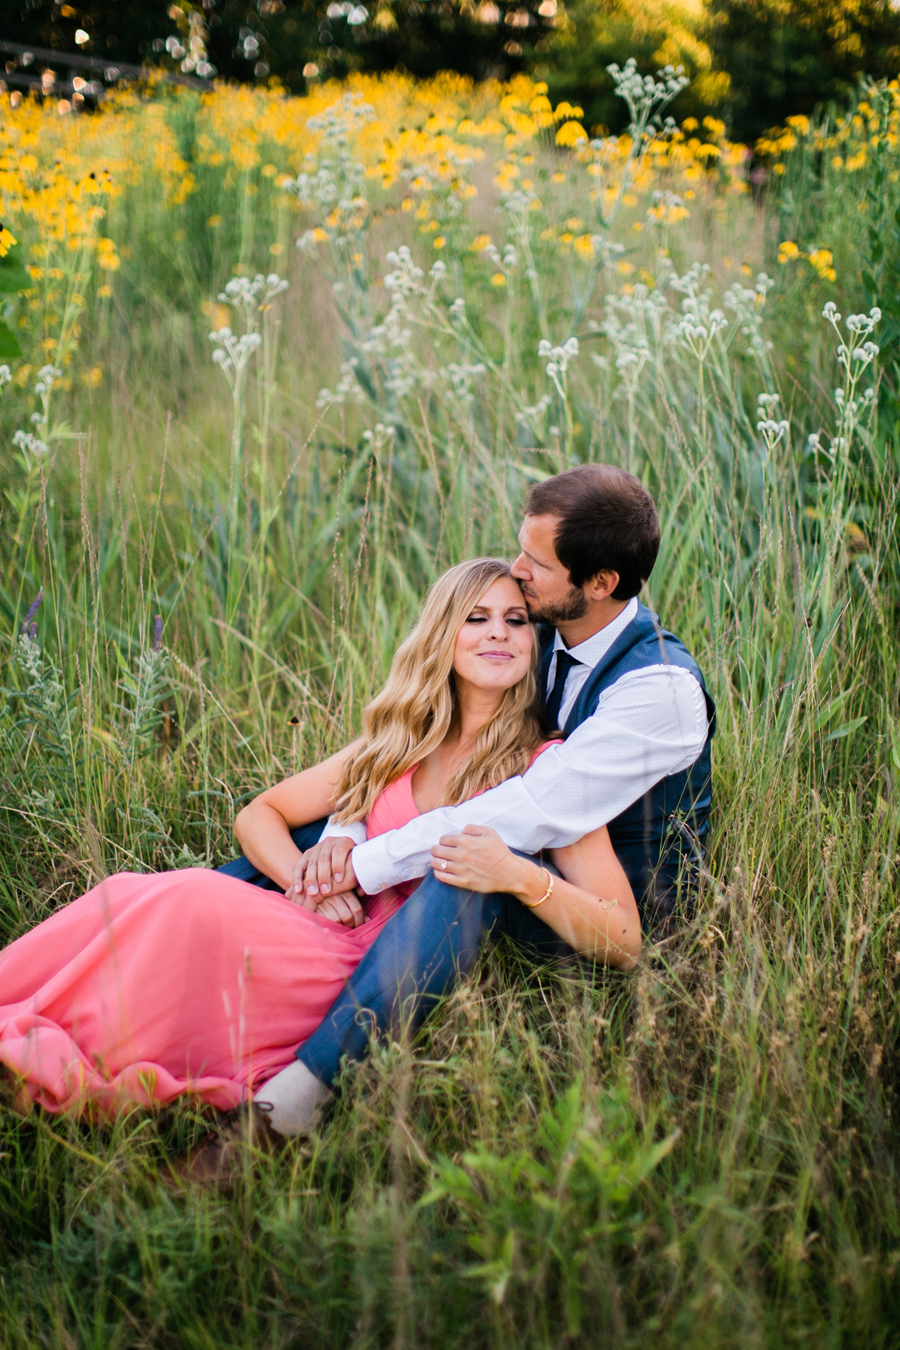 artistrie-co-best-engagement-photos-2015-021